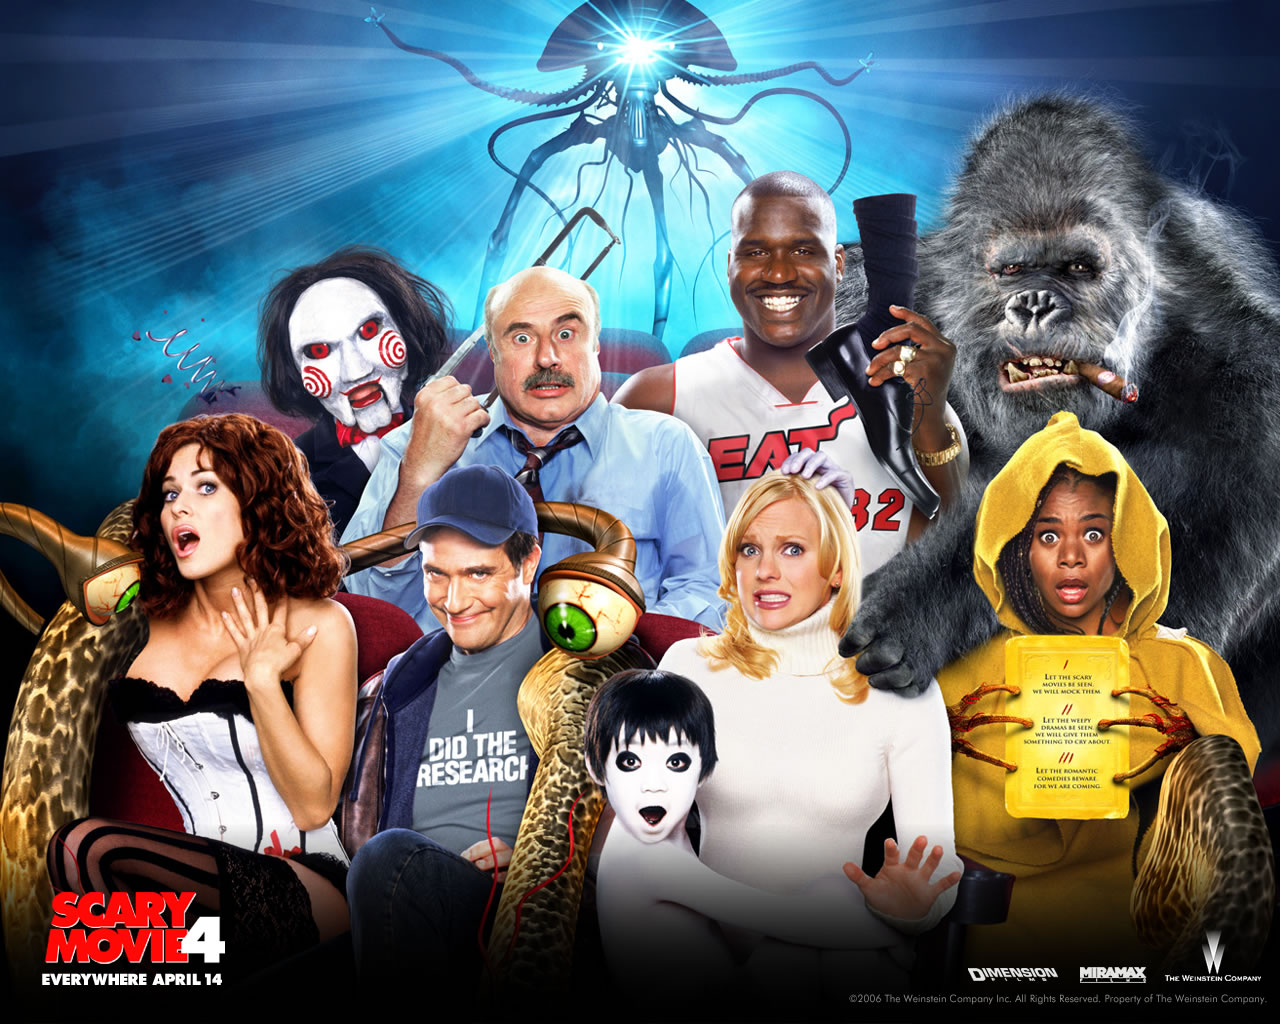 Scary movie 4 dvd oder blu ray leihen - Scary movie 5 wallpaper ...